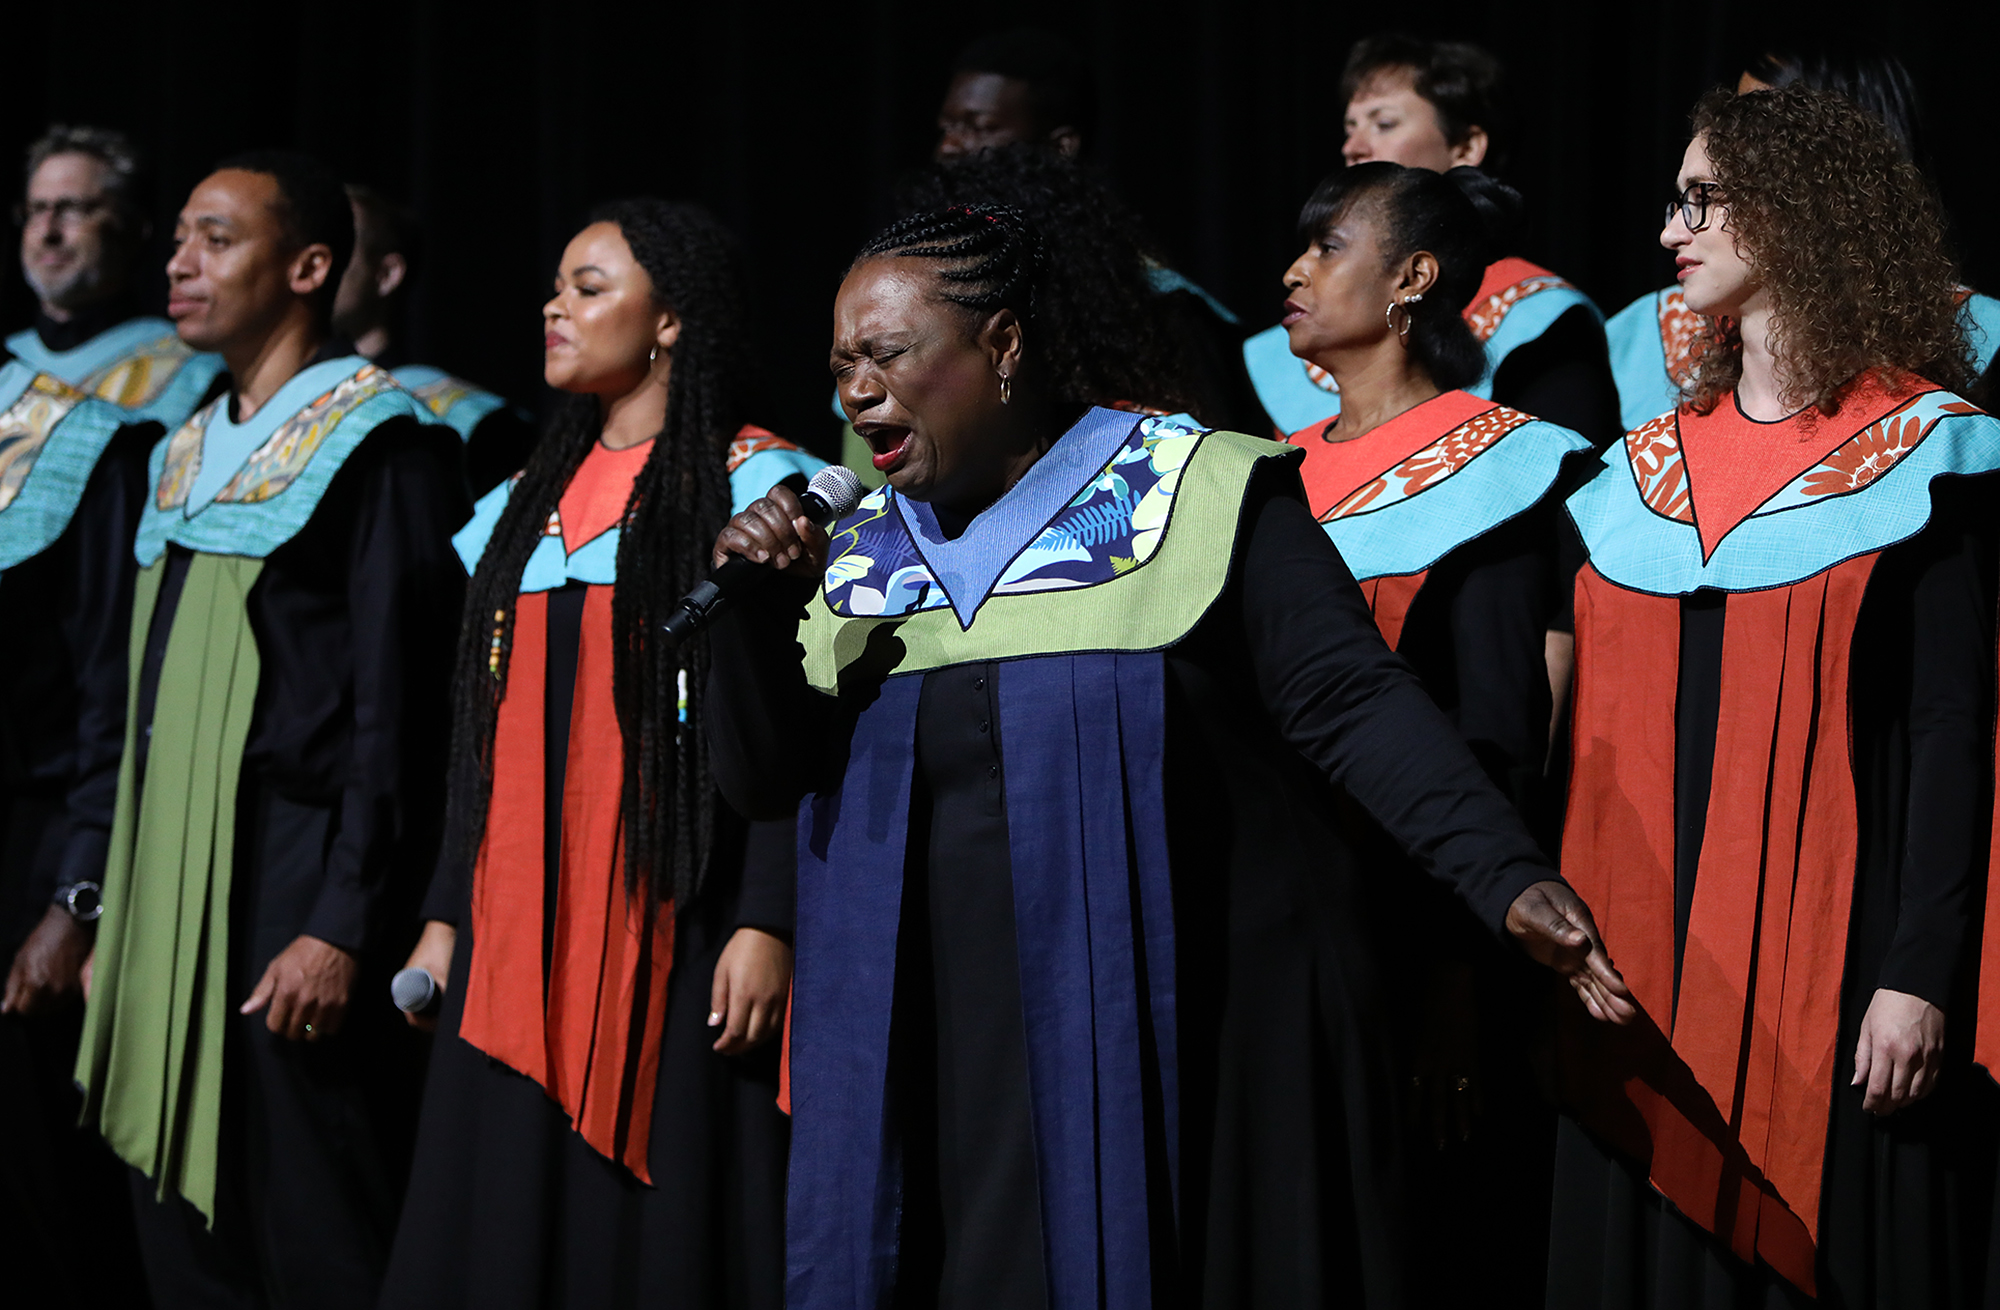 Debra Bonner, center, performs with The Debra Bonner Unity Gospel Choir, an independent LDS choir, during the 109th NAACP Annual Convention at the Henry B. González Convention Center in San Antonio on Sunday, July 15, 2018.